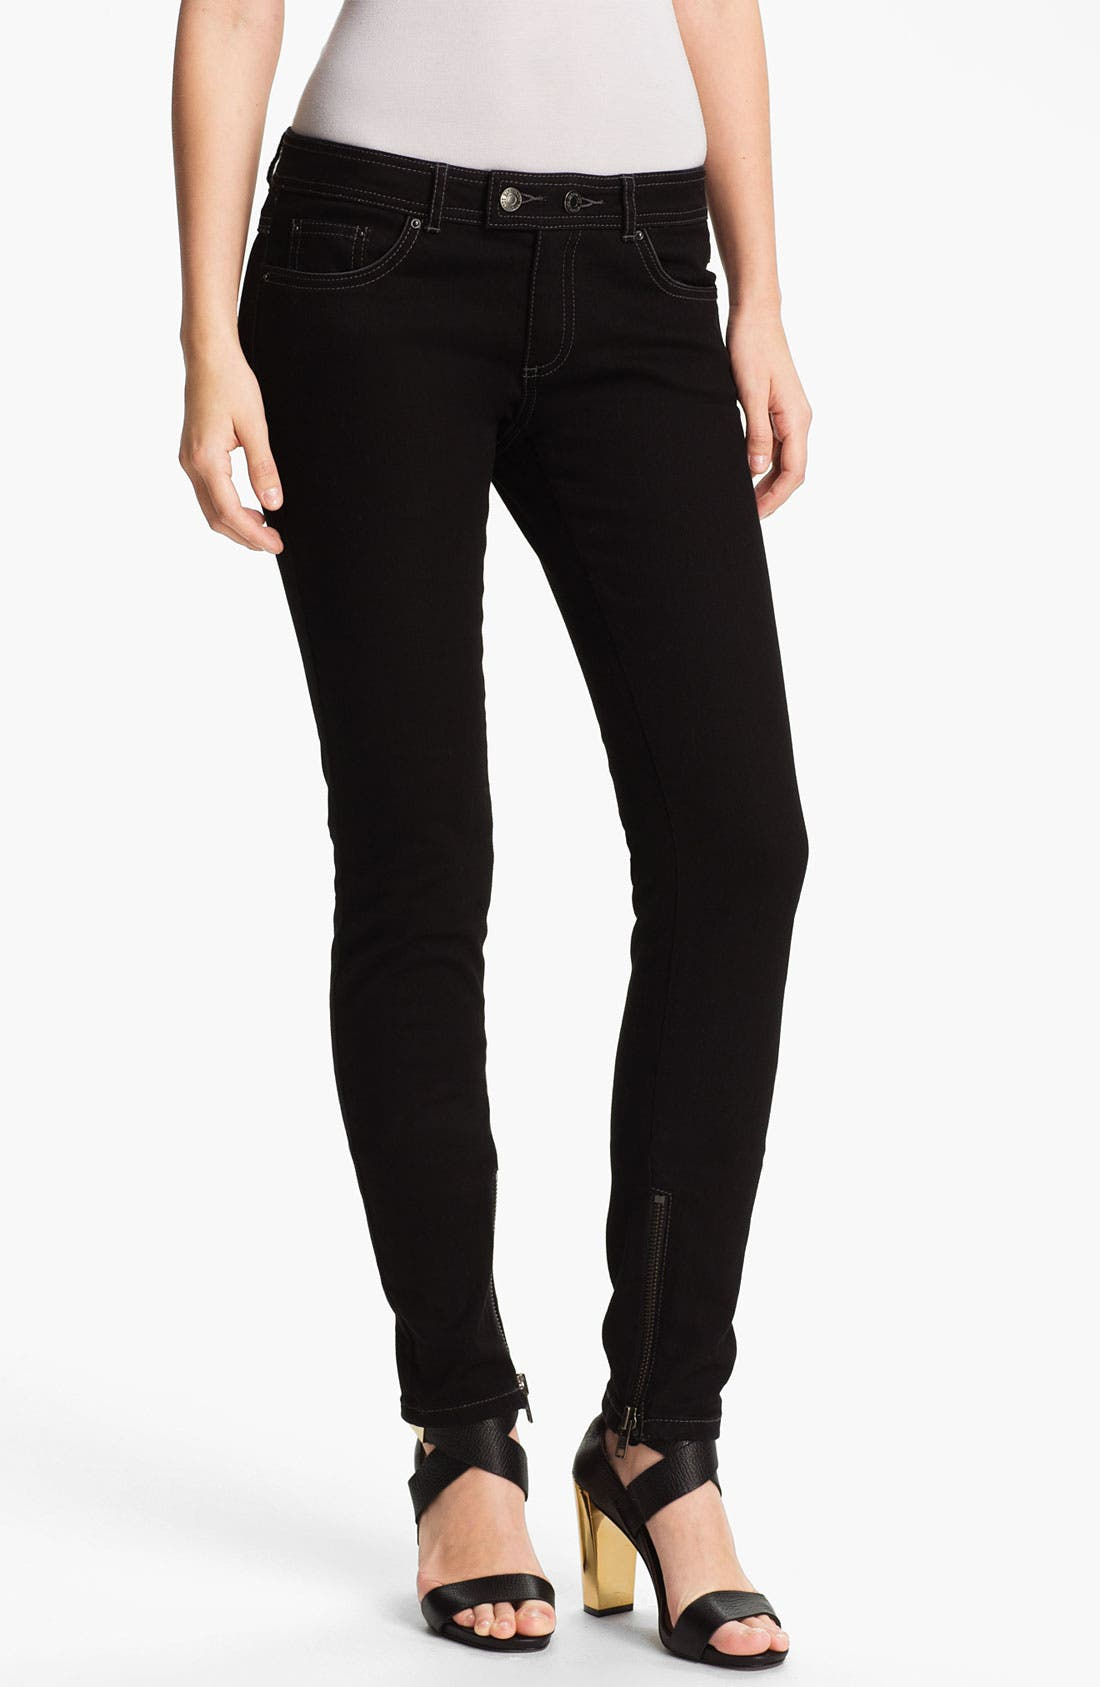 Alternate Image 1 Selected - Rachel Zoe 'Julie' Piped Detail Skinny Stretch Jeans